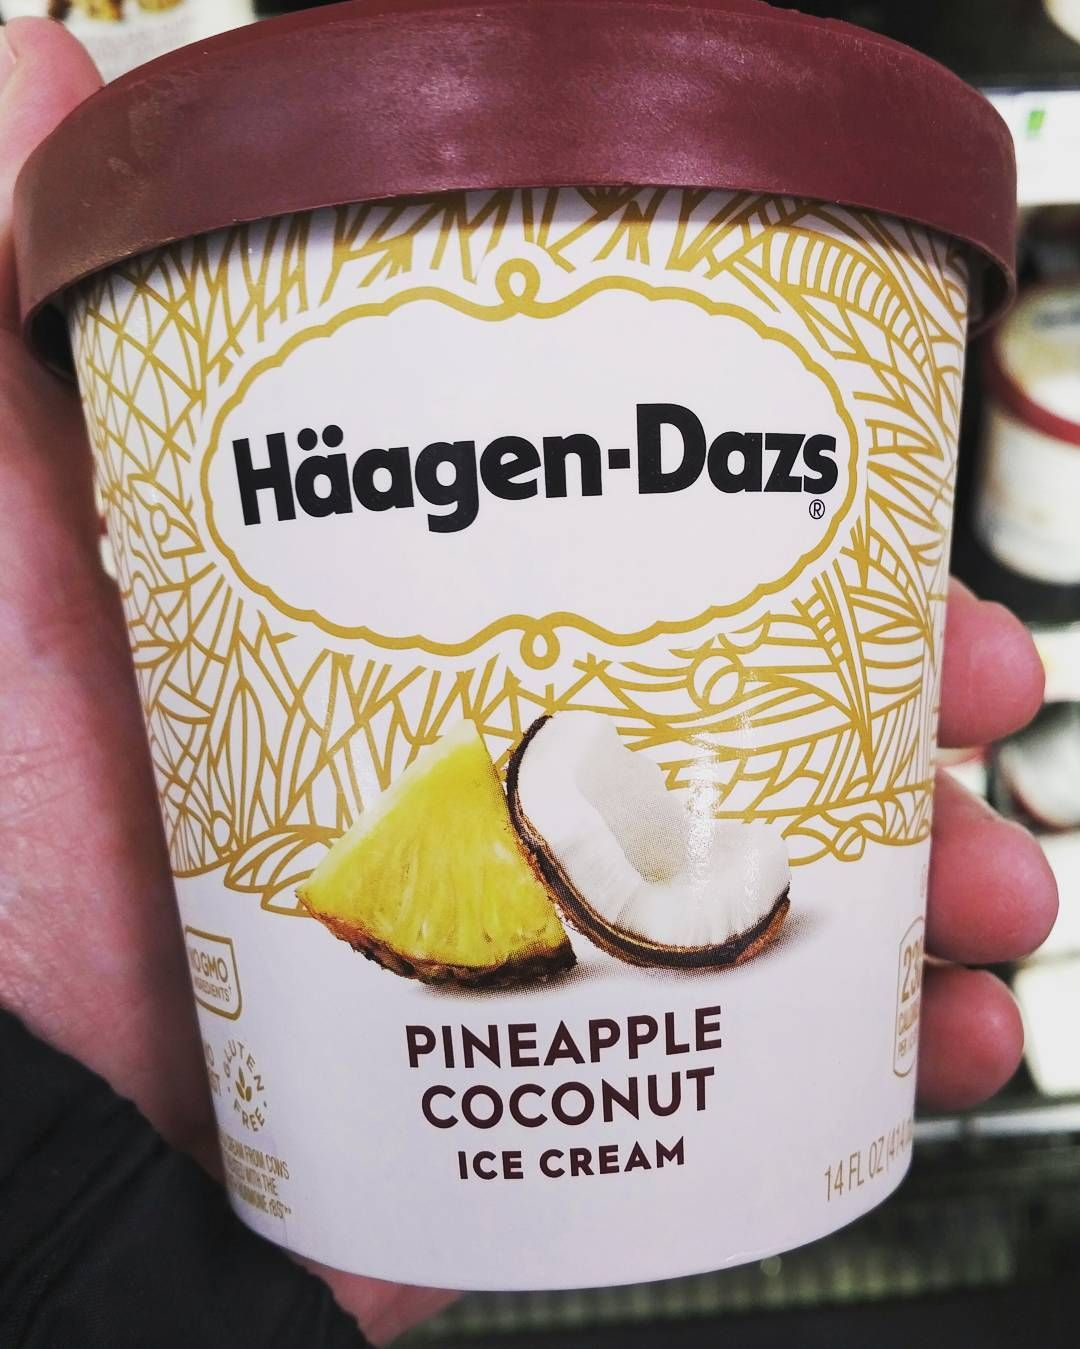 Haagen Dazs Pineapple Coconut Ice Cream Sounds Really Weird To Me Anyone Tried It Haagendazs Pineapple Coconut Ice Cream Coconut Ice Cream Pineapple Coconut